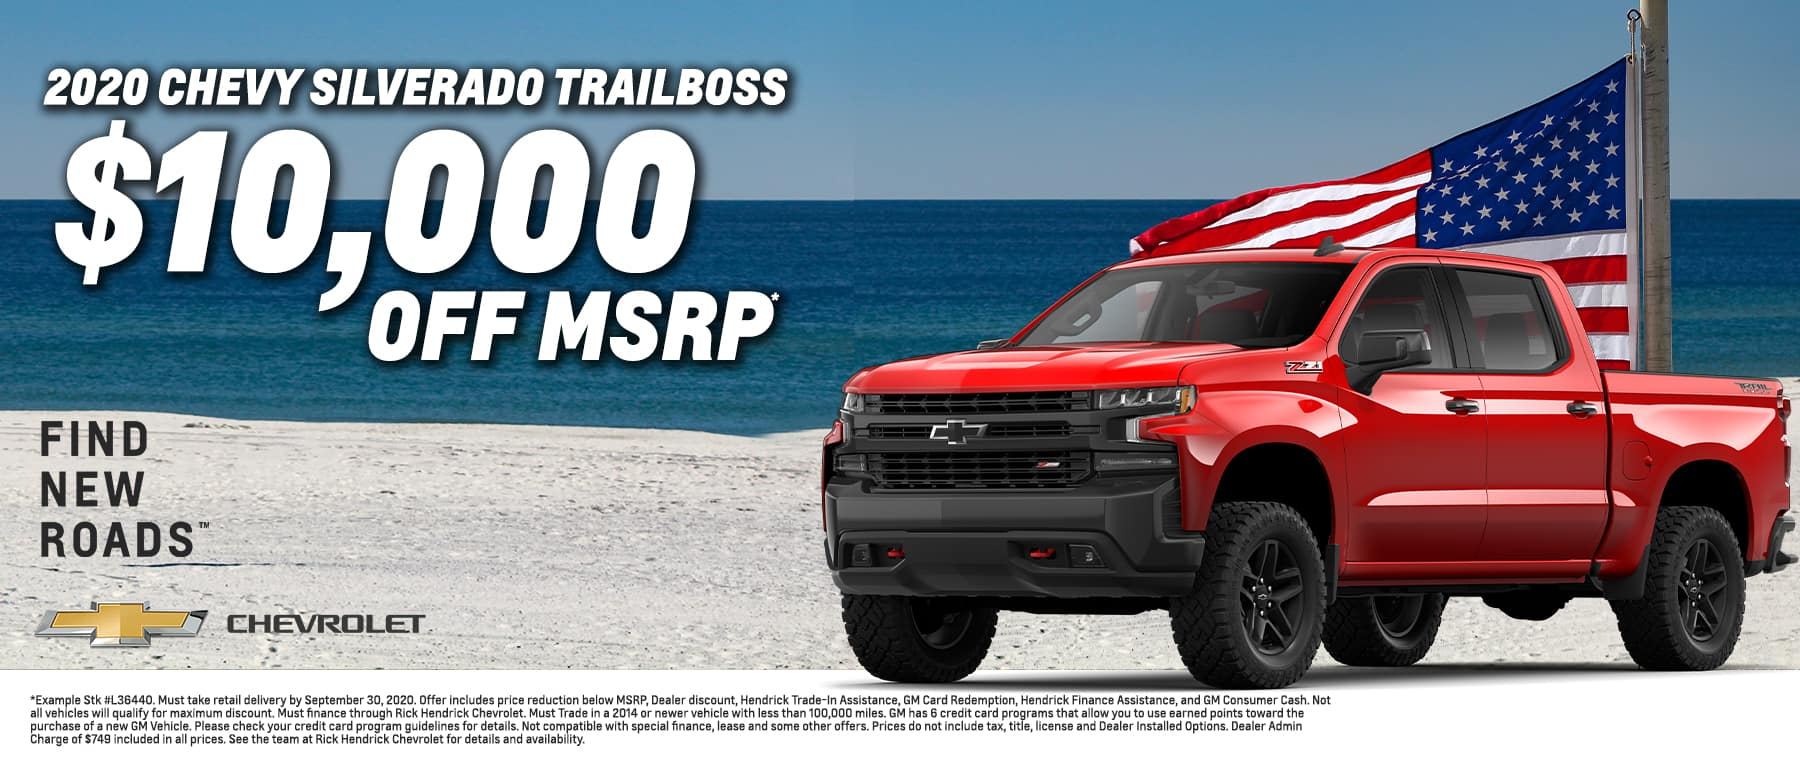 RHchevyDuluth_Aug20_TR_New-Vehicle-Specials-trailboss-1800×760